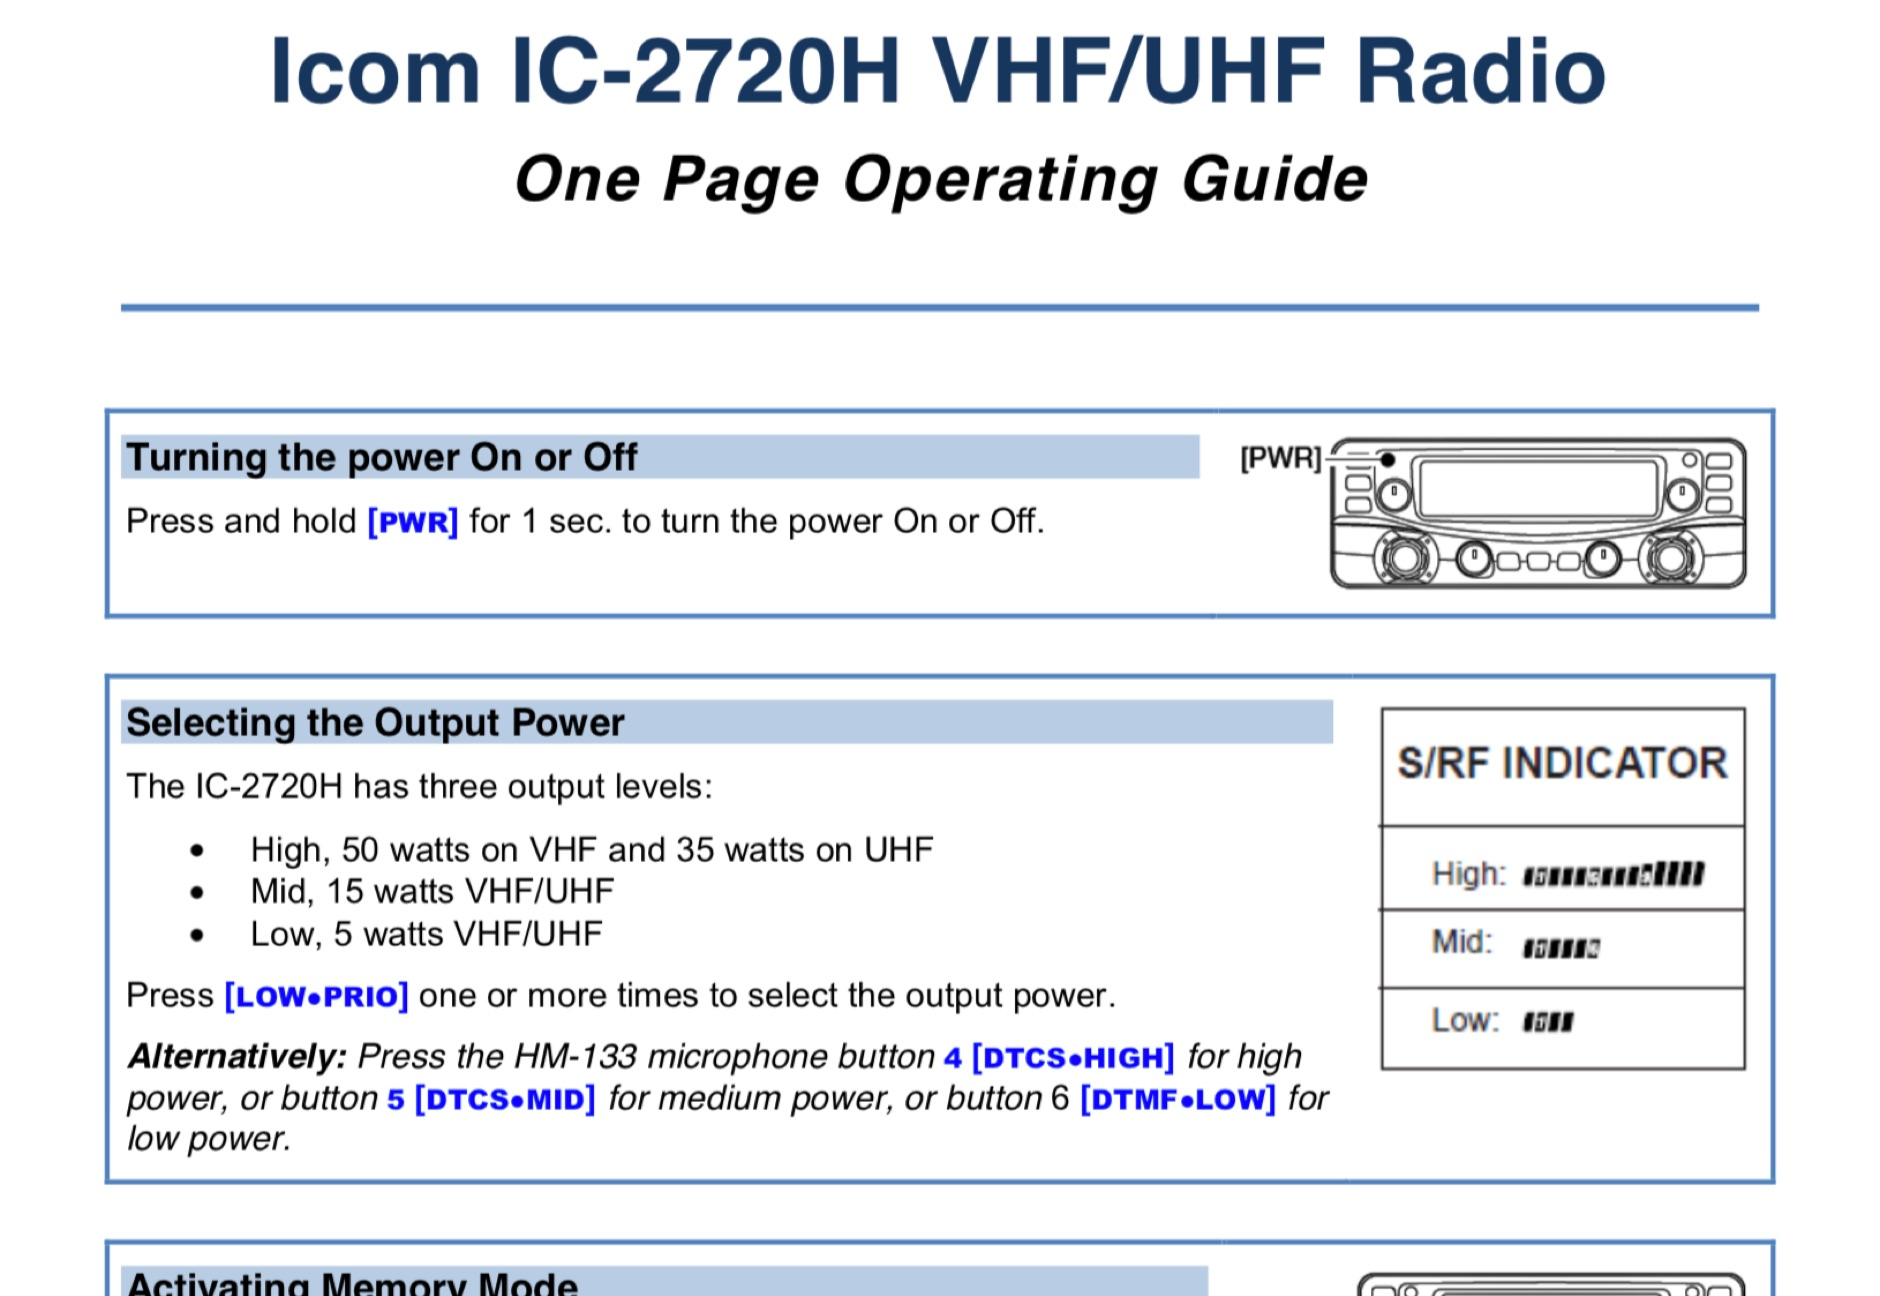 Icom IC-2720H One Page Operating Guide